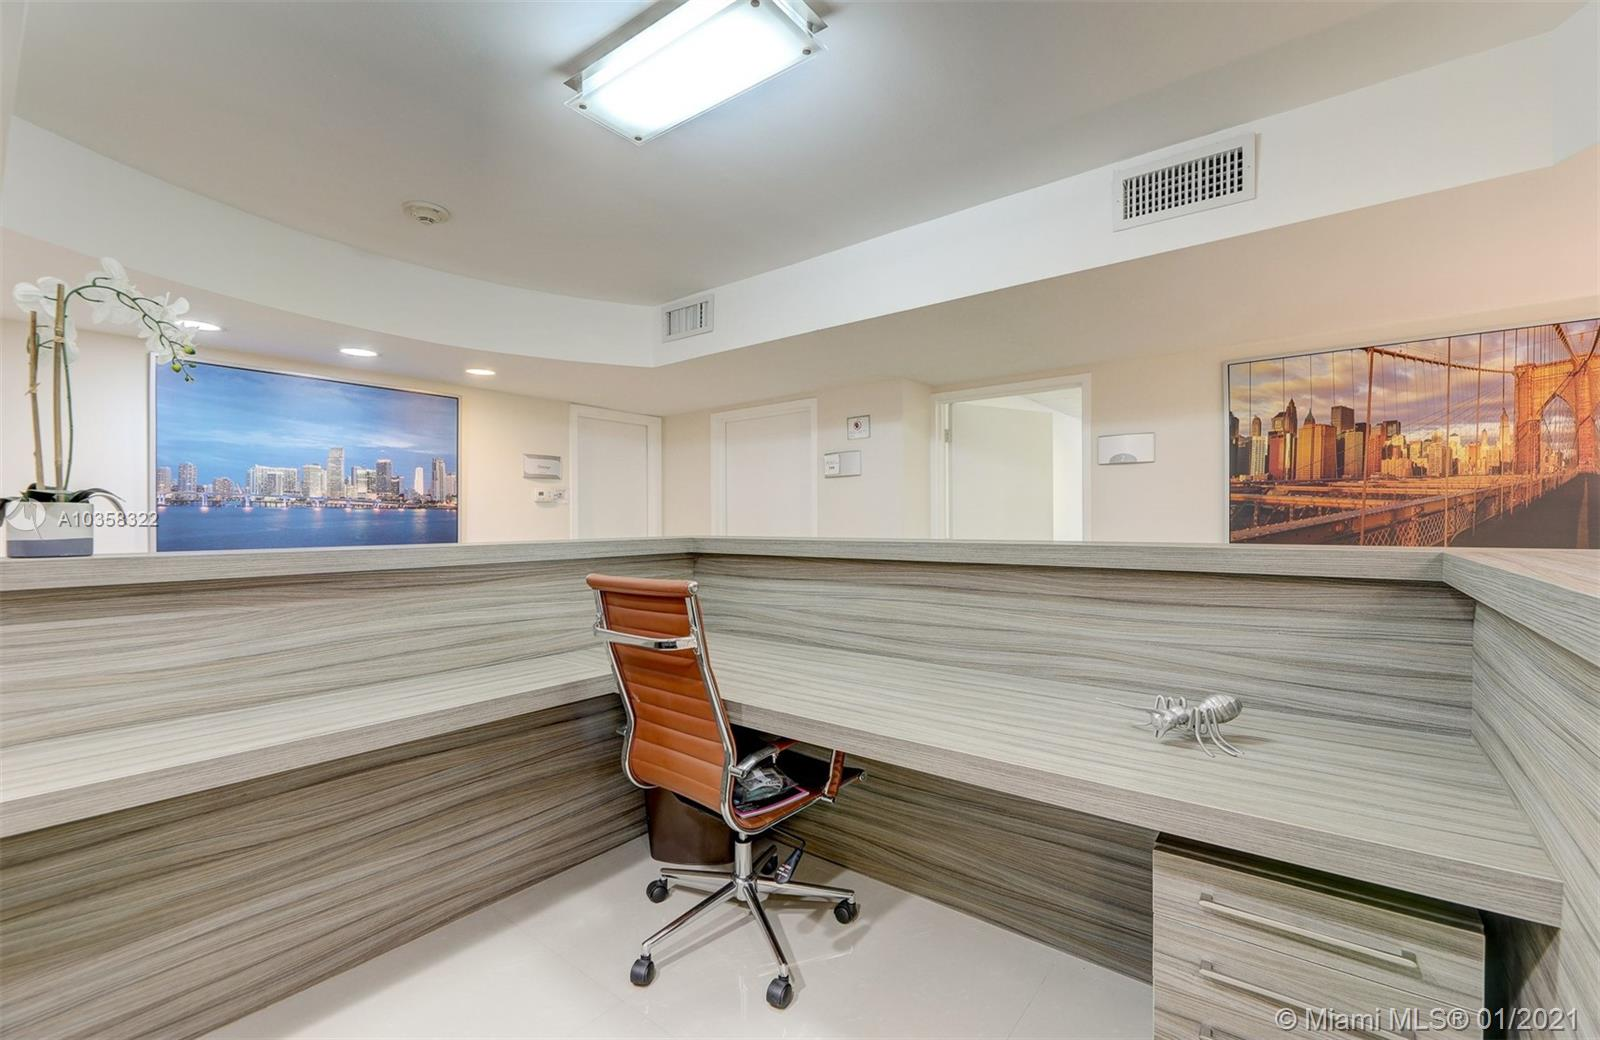 825 BRICKELL BAY DR # 7, Miami, Florida 33131, ,Commercial Sale,For Sale,825 BRICKELL BAY DR # 7,A10358322